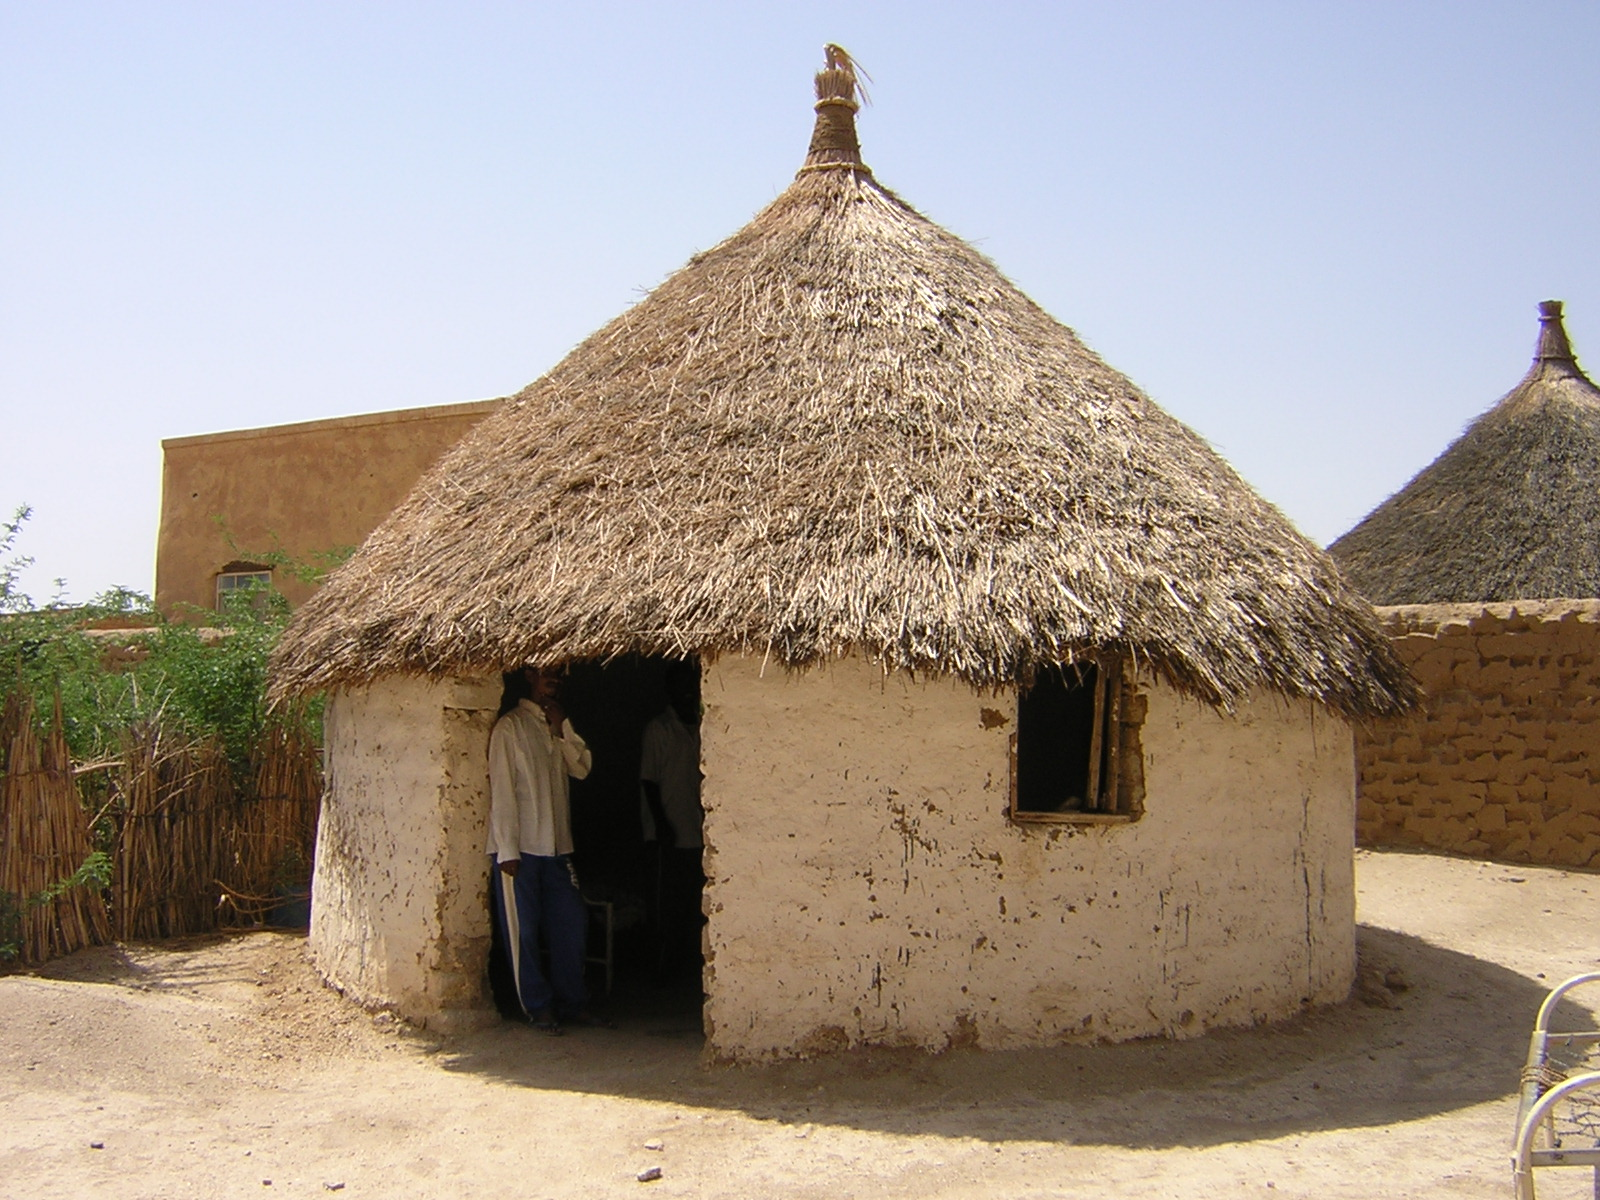 Earthen hut with thatched roof in Sudan